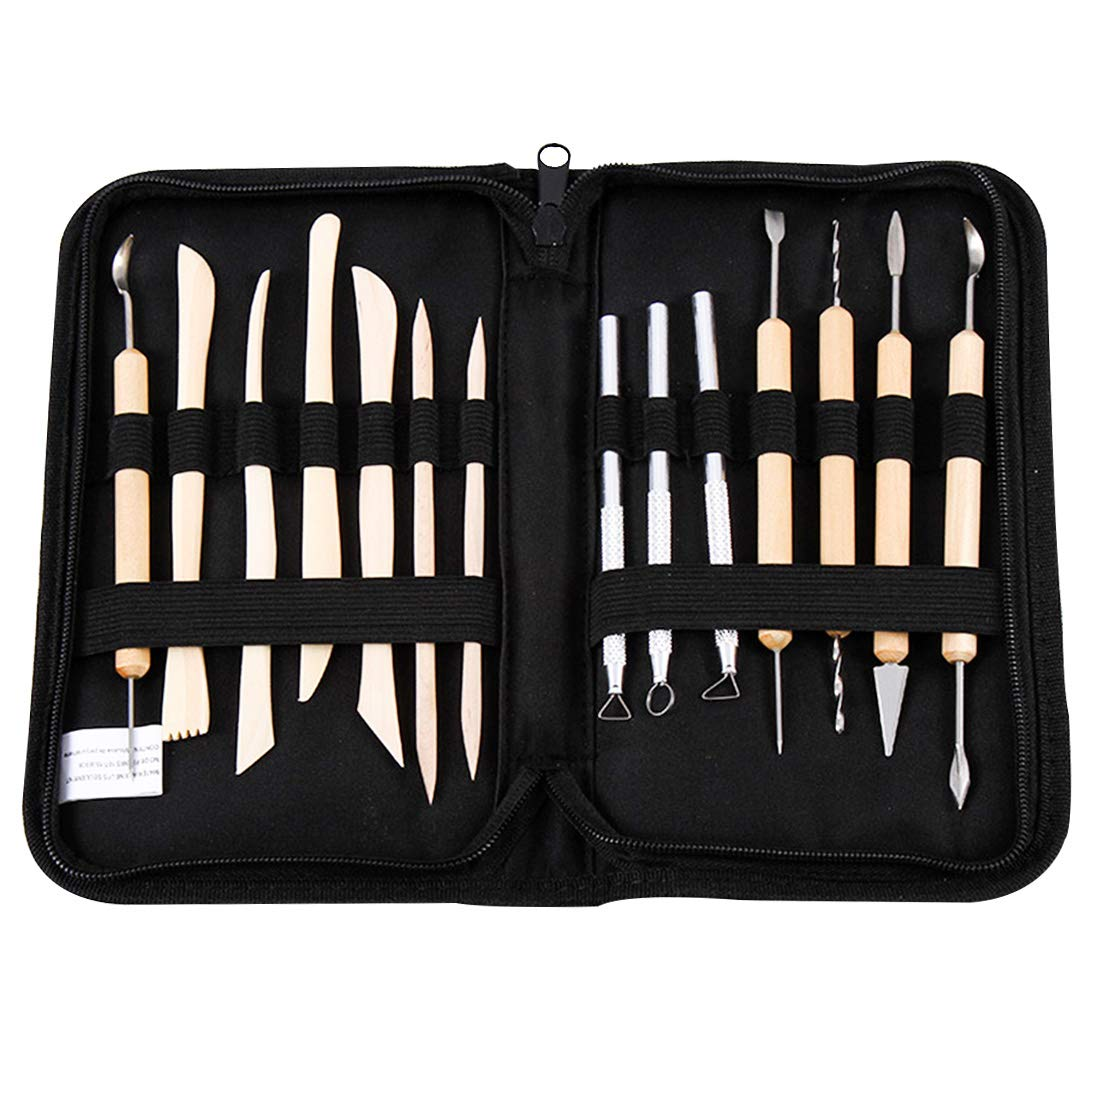 Polymer Clay Tools, 14 Pcs Wooden Handle Wax Clay Sculpting Carving DIY Tools Kit, Spatula Chisel Carver Set and Canvas Case for Sculpting, Detailing, Pottery Carving, Shapers Modeling Art Crafts